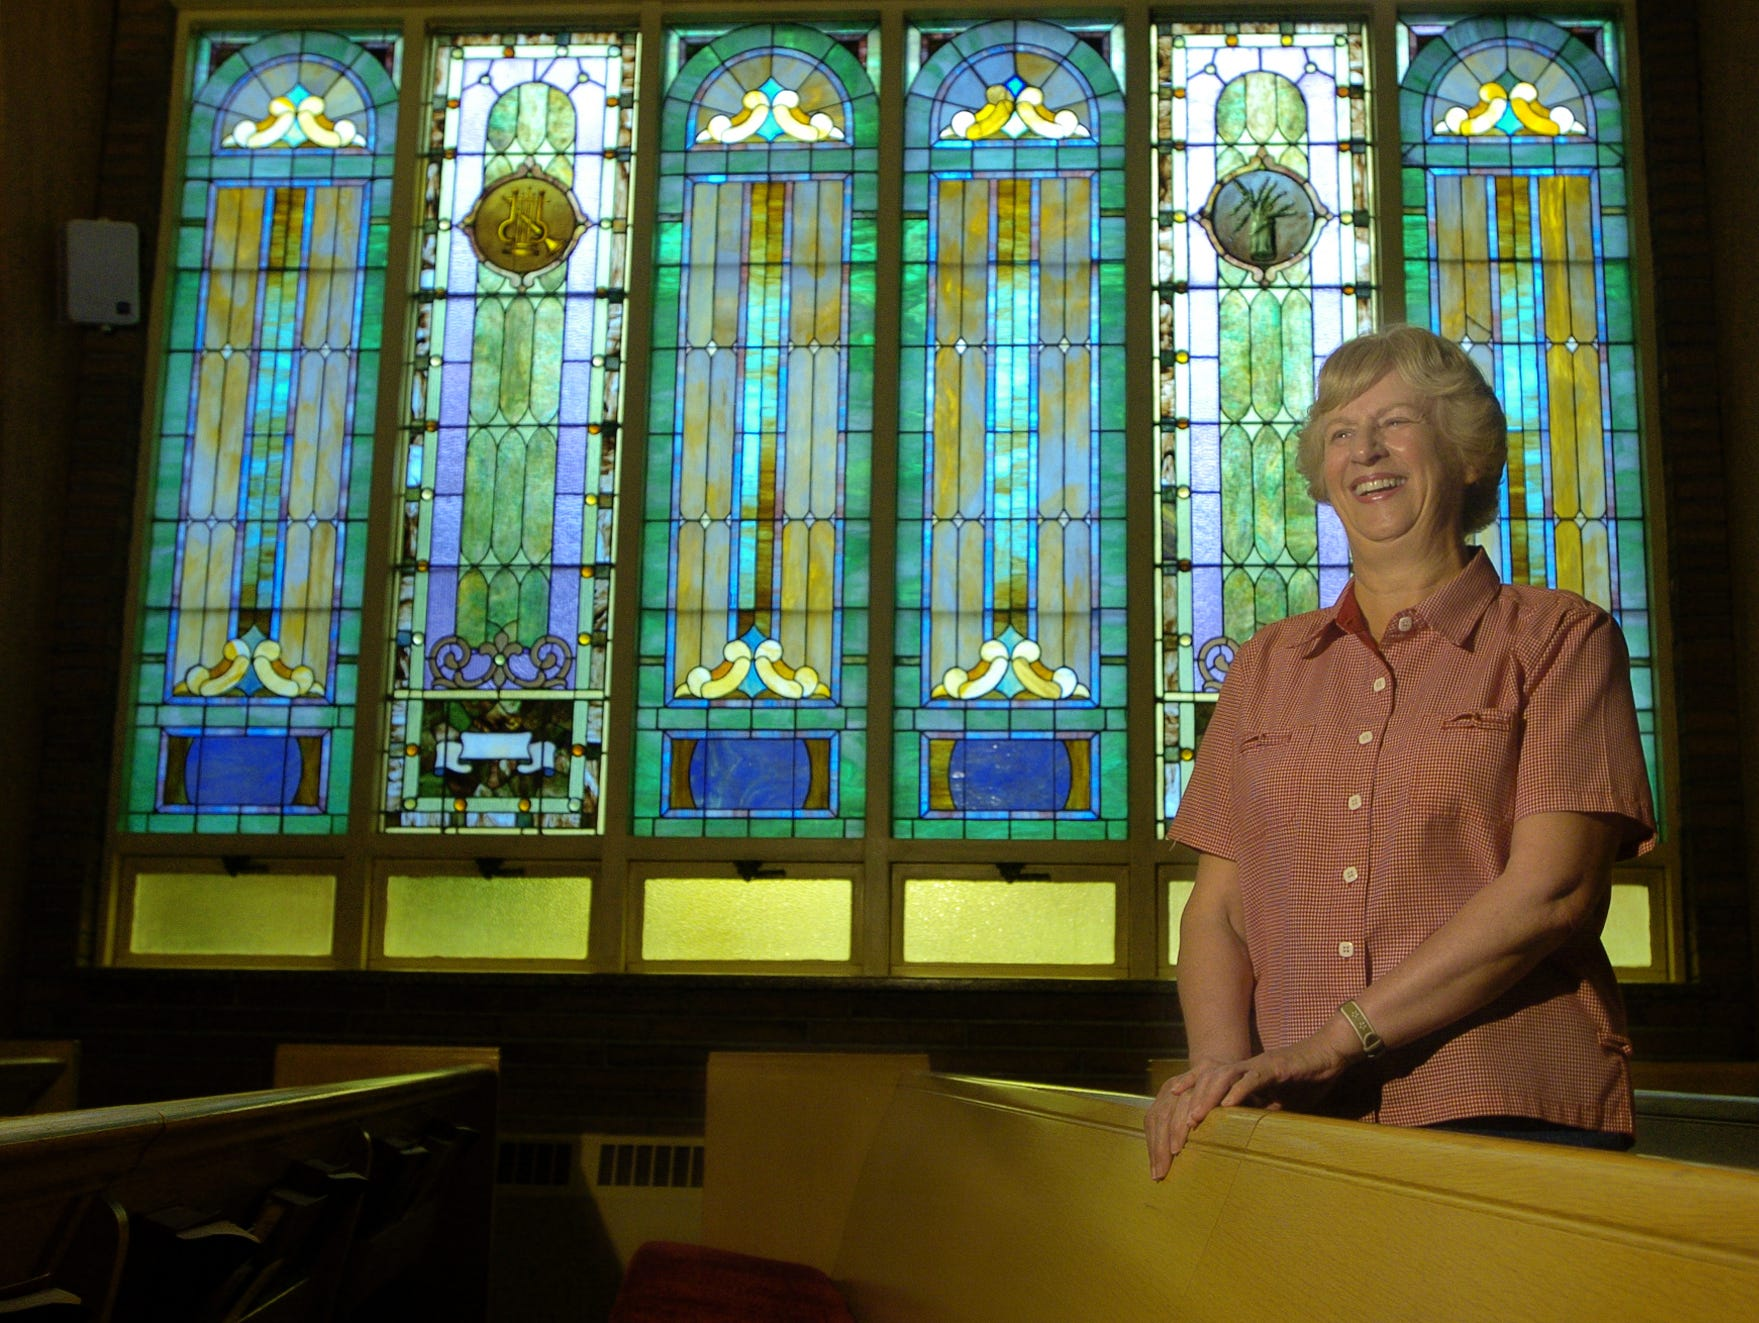 Suzanne Waring stands in the First United Methodist Church in 2006.